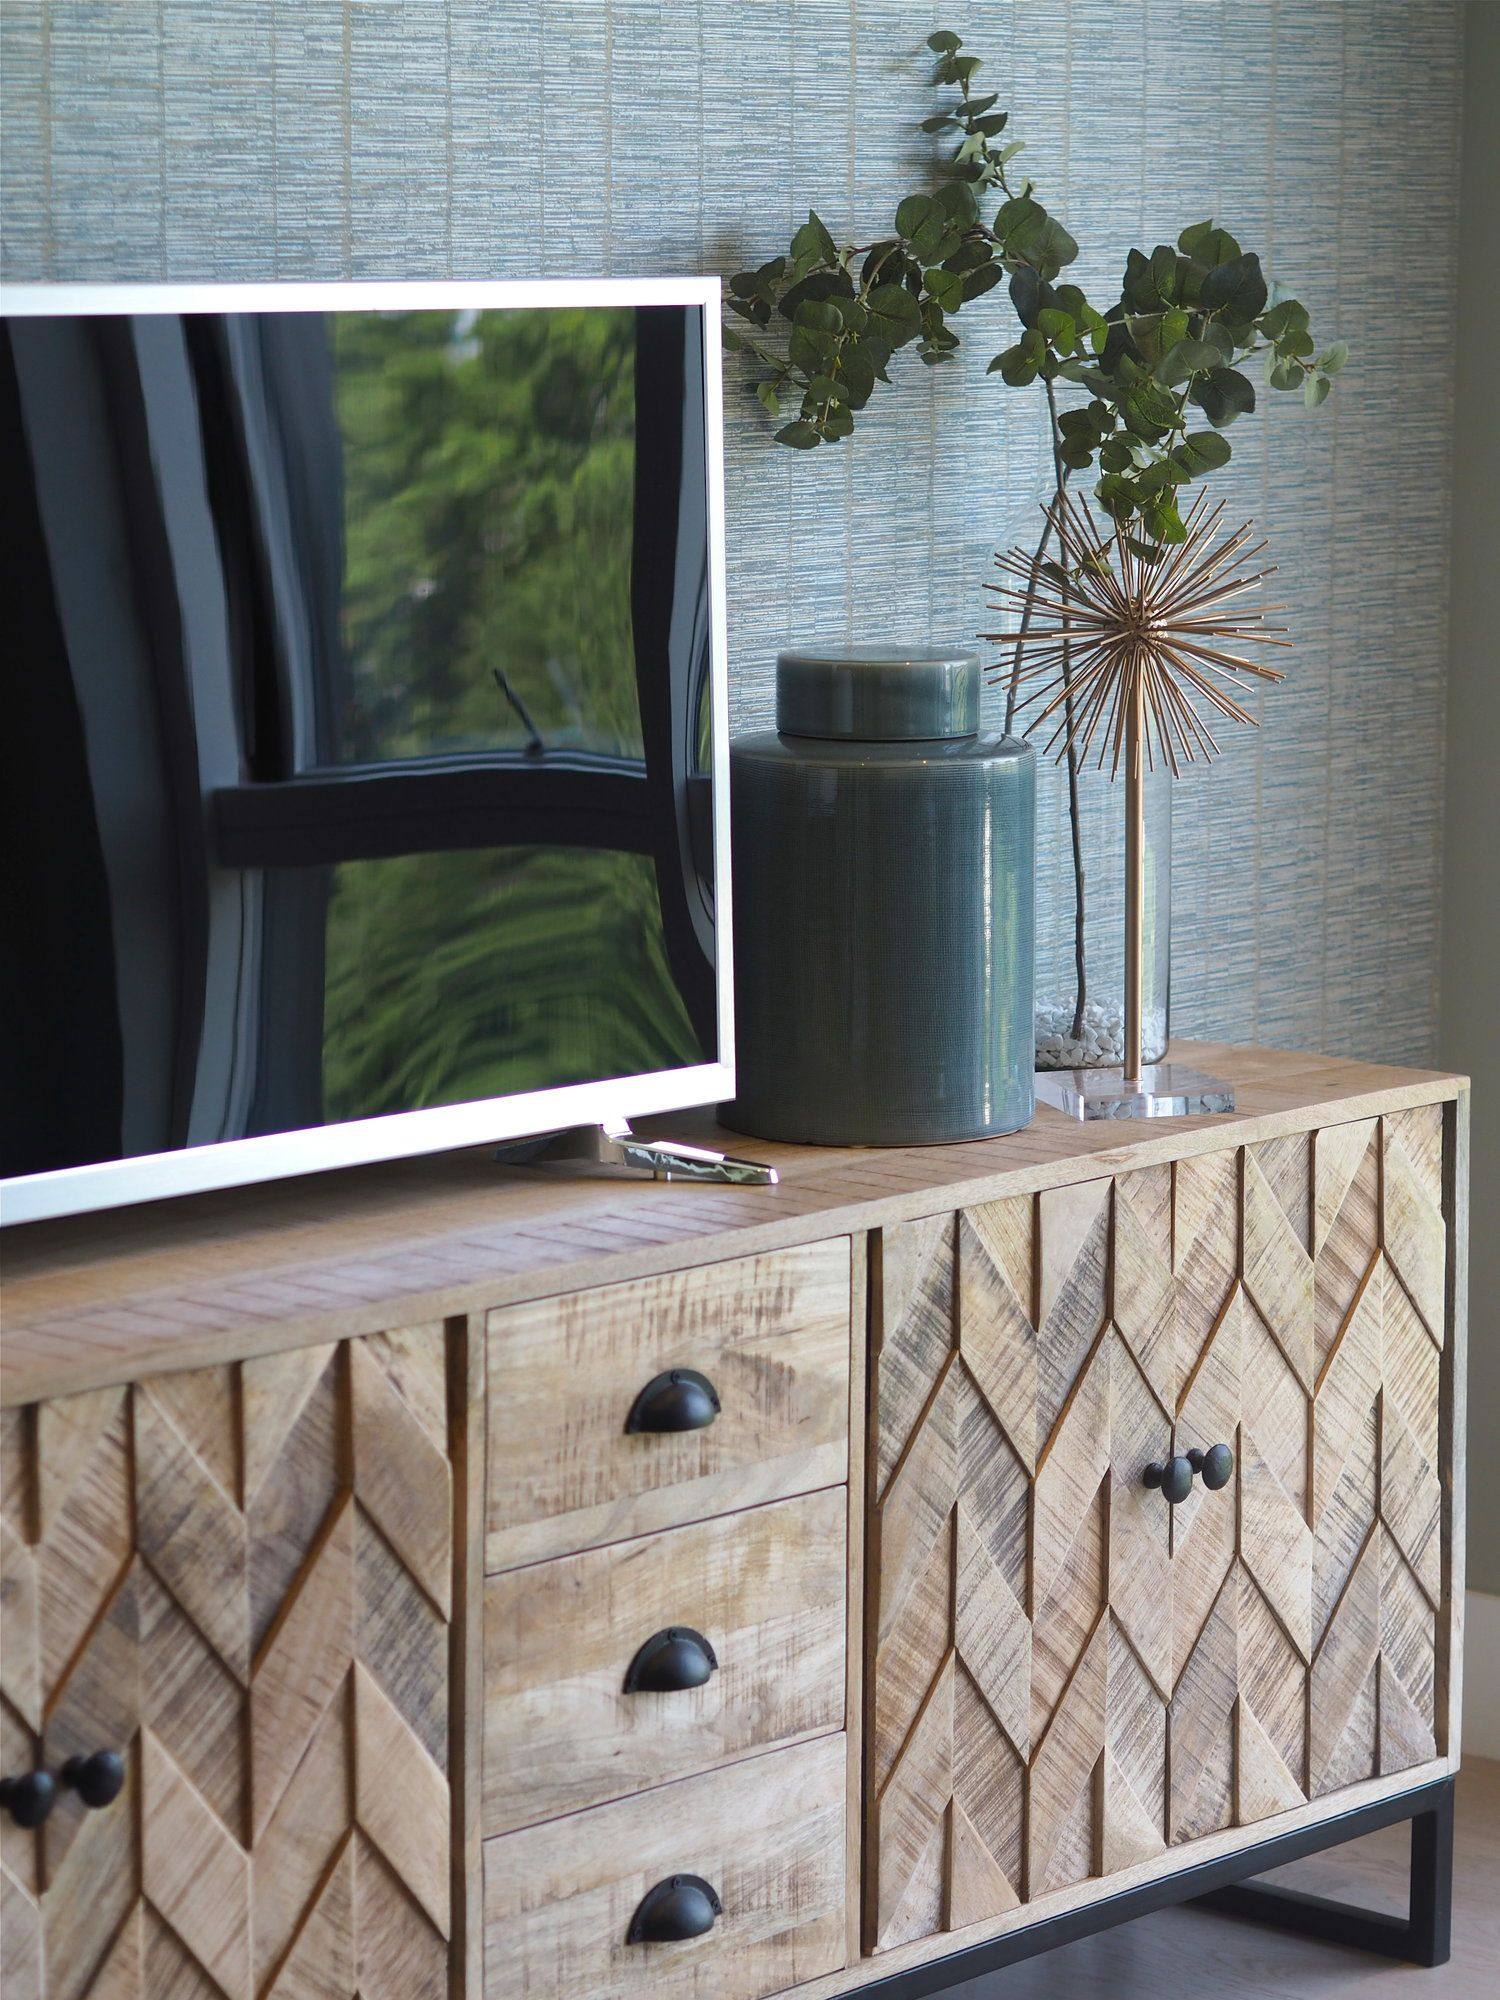 How To Make A New Build Feel Homely And Full Of Character with L&Q